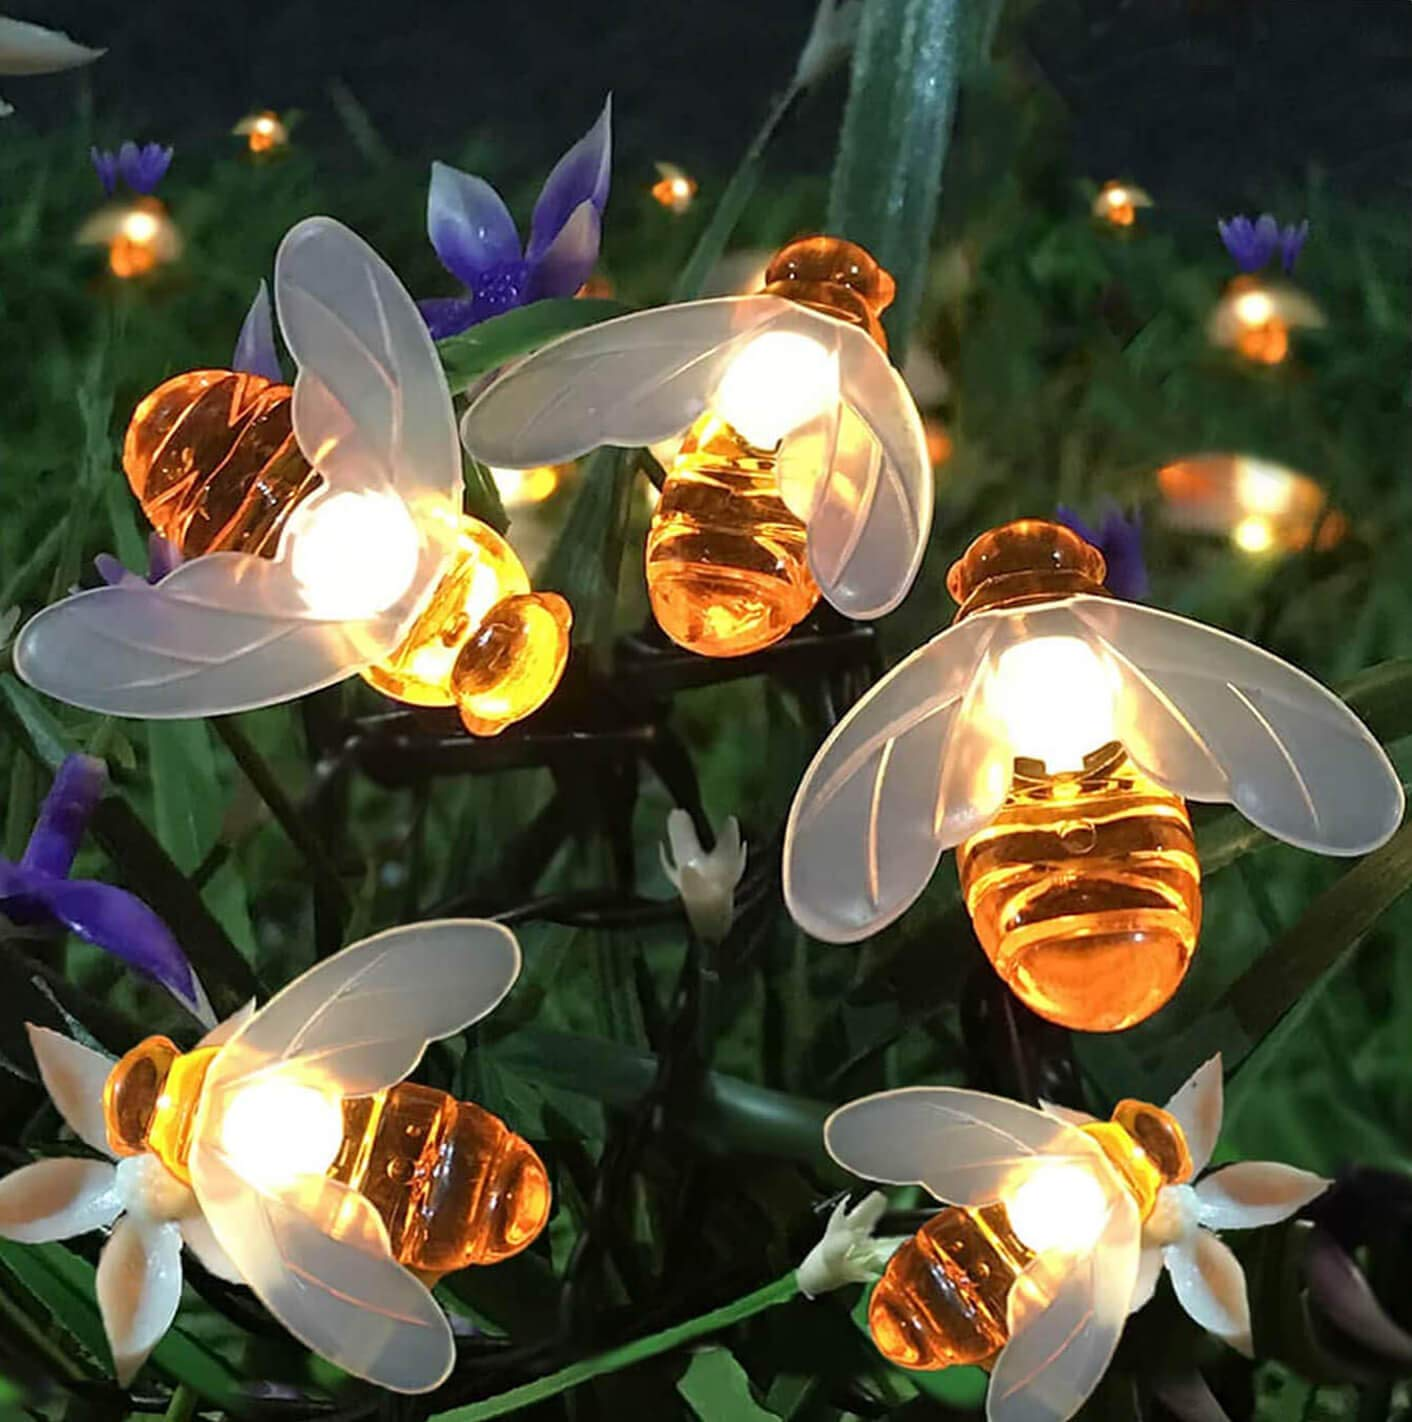 Semilits Solar String Lights 20LED Outdoor Waterproof Simulation Honey Bees Decor for Garden Xmas Decorations Warm White